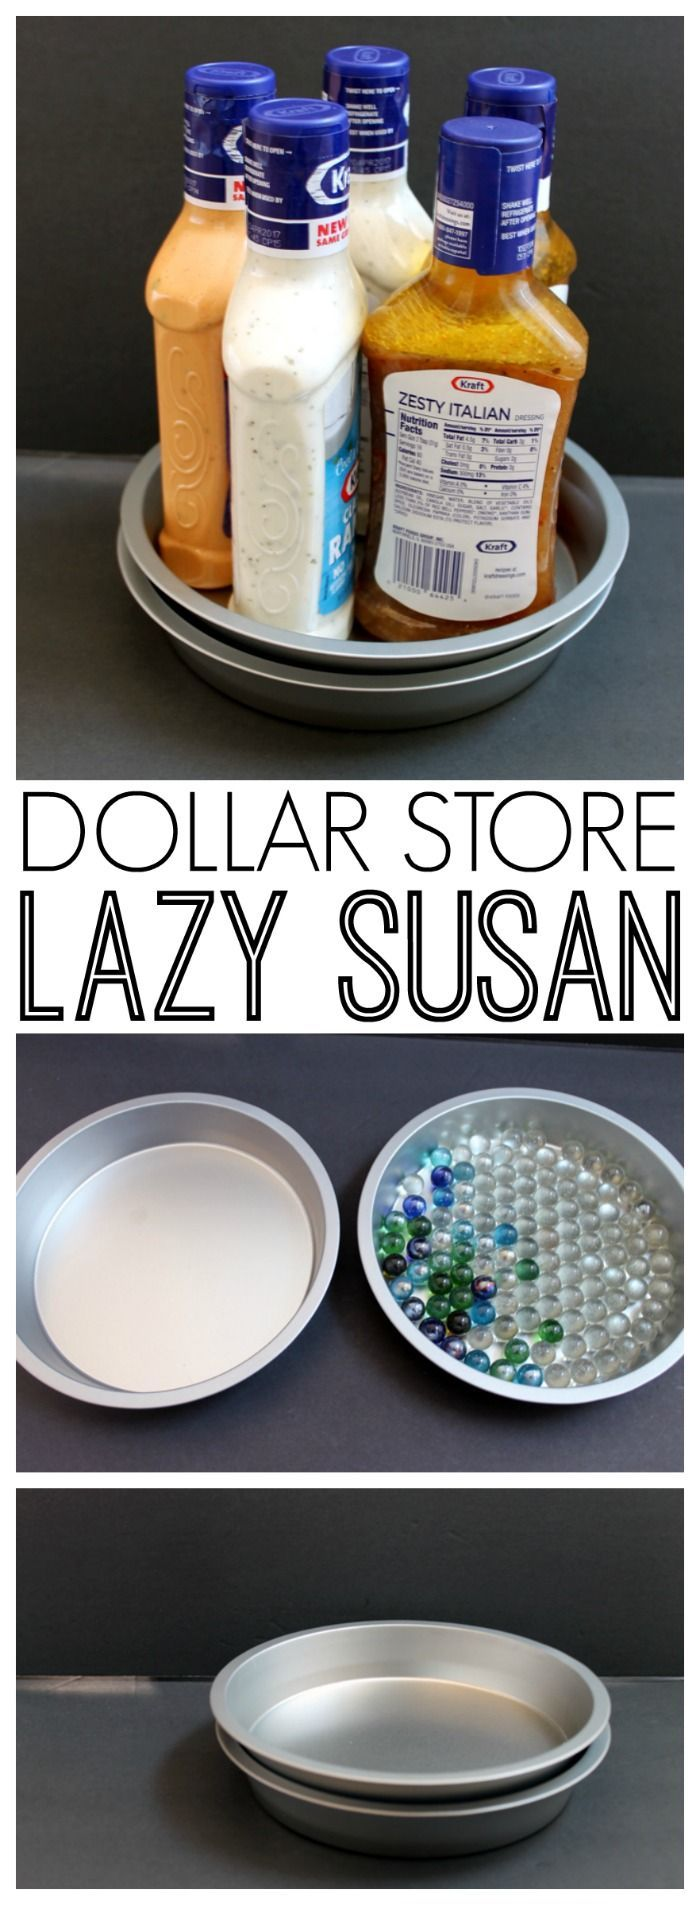 Dollar Store Lazy Susan Organizing Idea